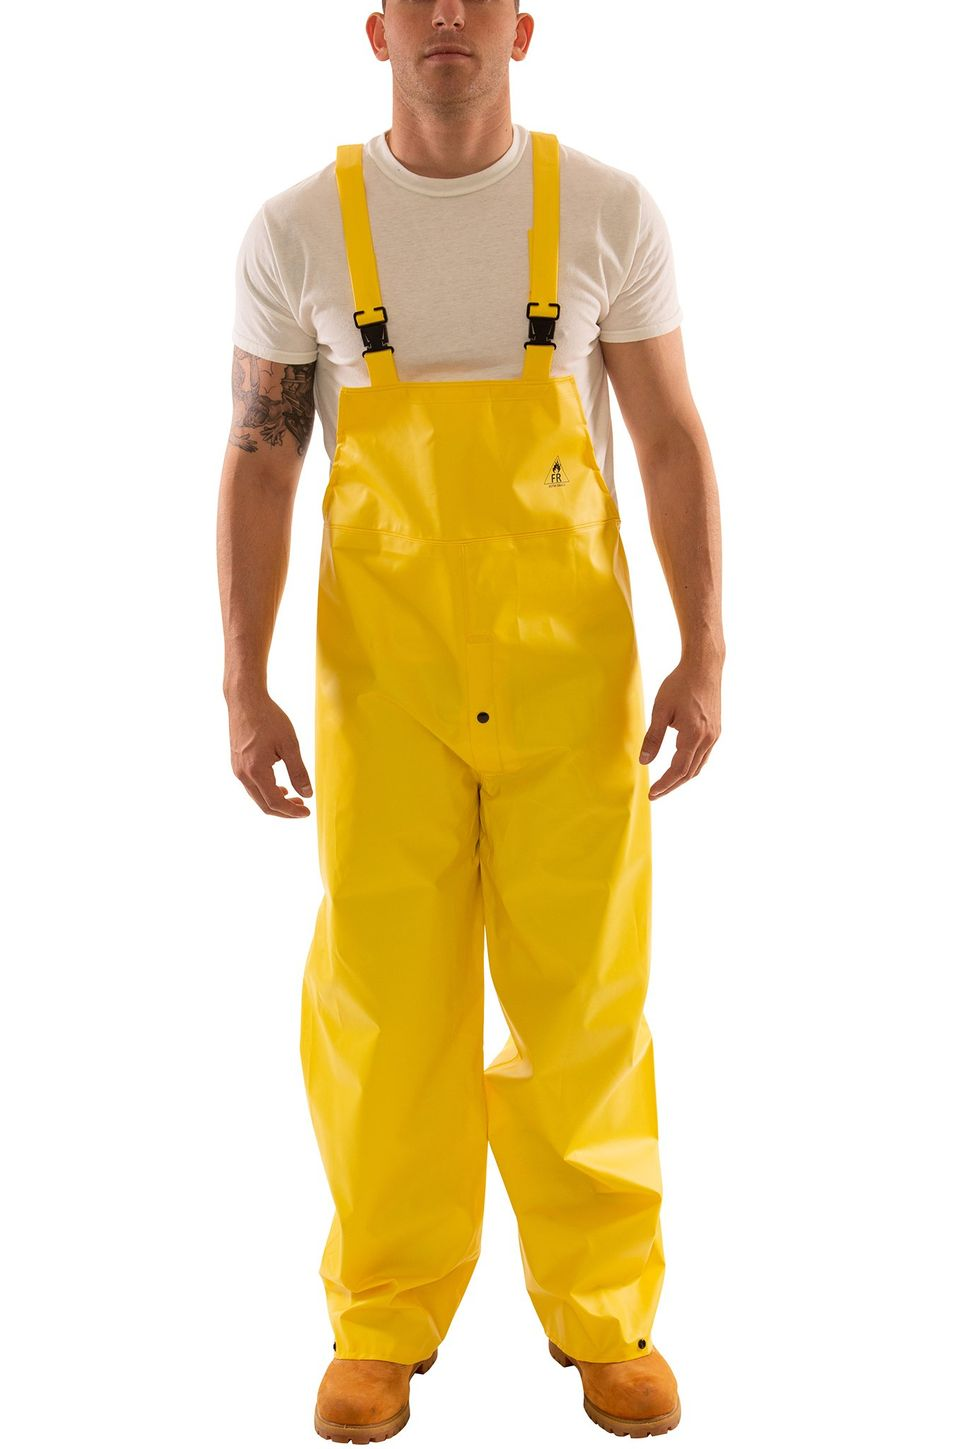 tingley-s56307-durascrim-fire-resistant-suit-3-piece-pvc-coated-chemical-resistant-with-detachable-hood-overall.jpg